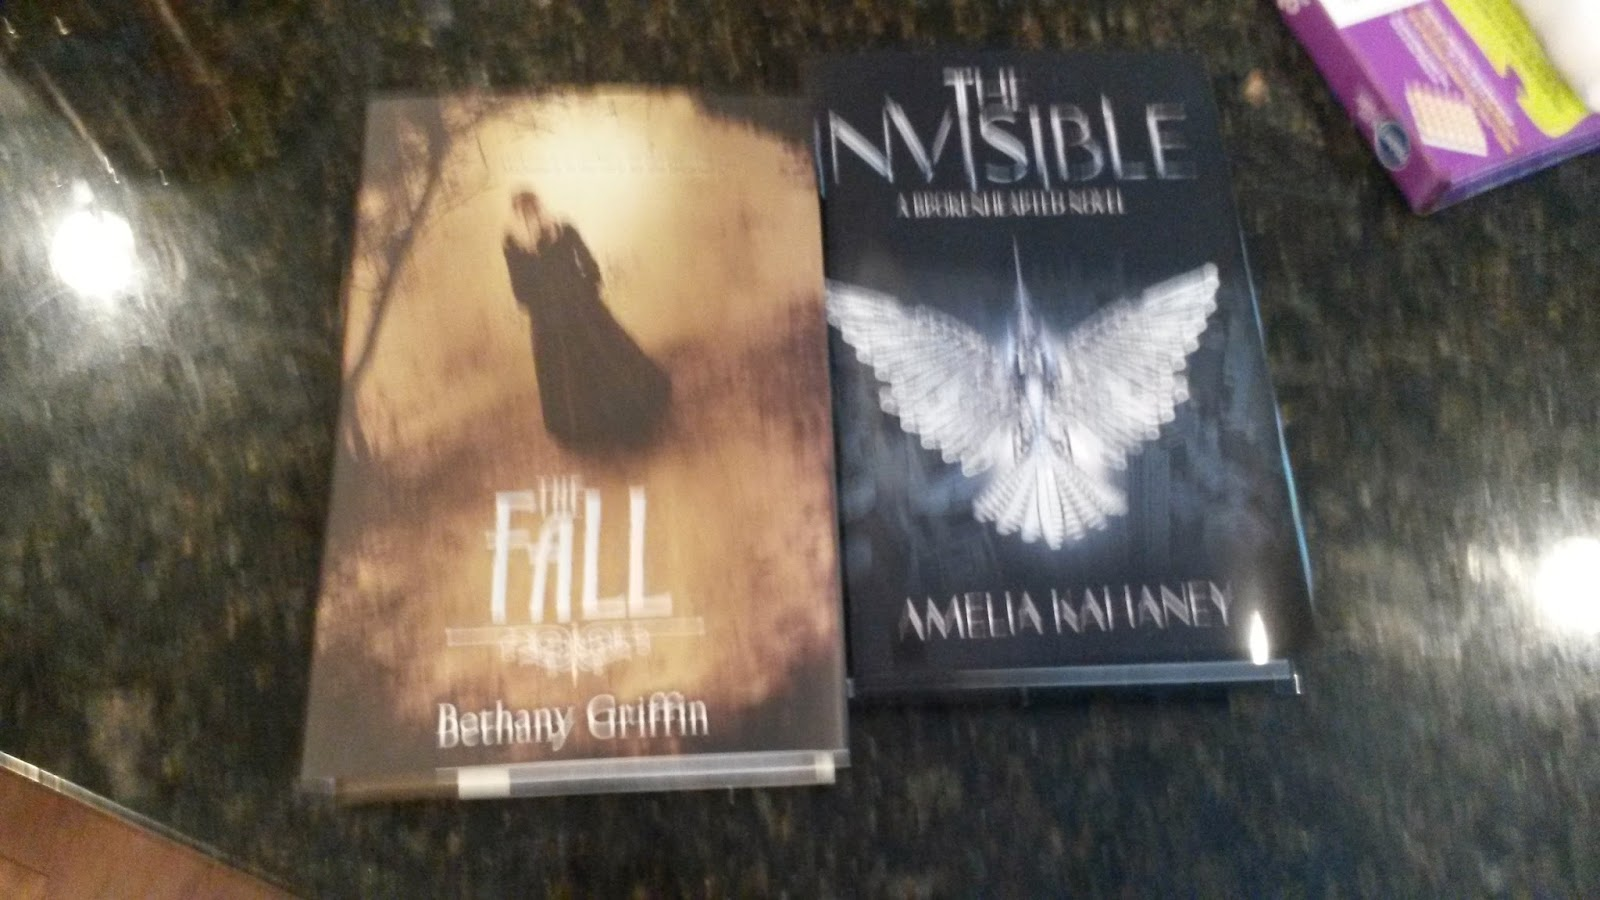 http://blkosiner.blogspot.com/2014/10/giveaway-black-ice-invisible-and-fall.html